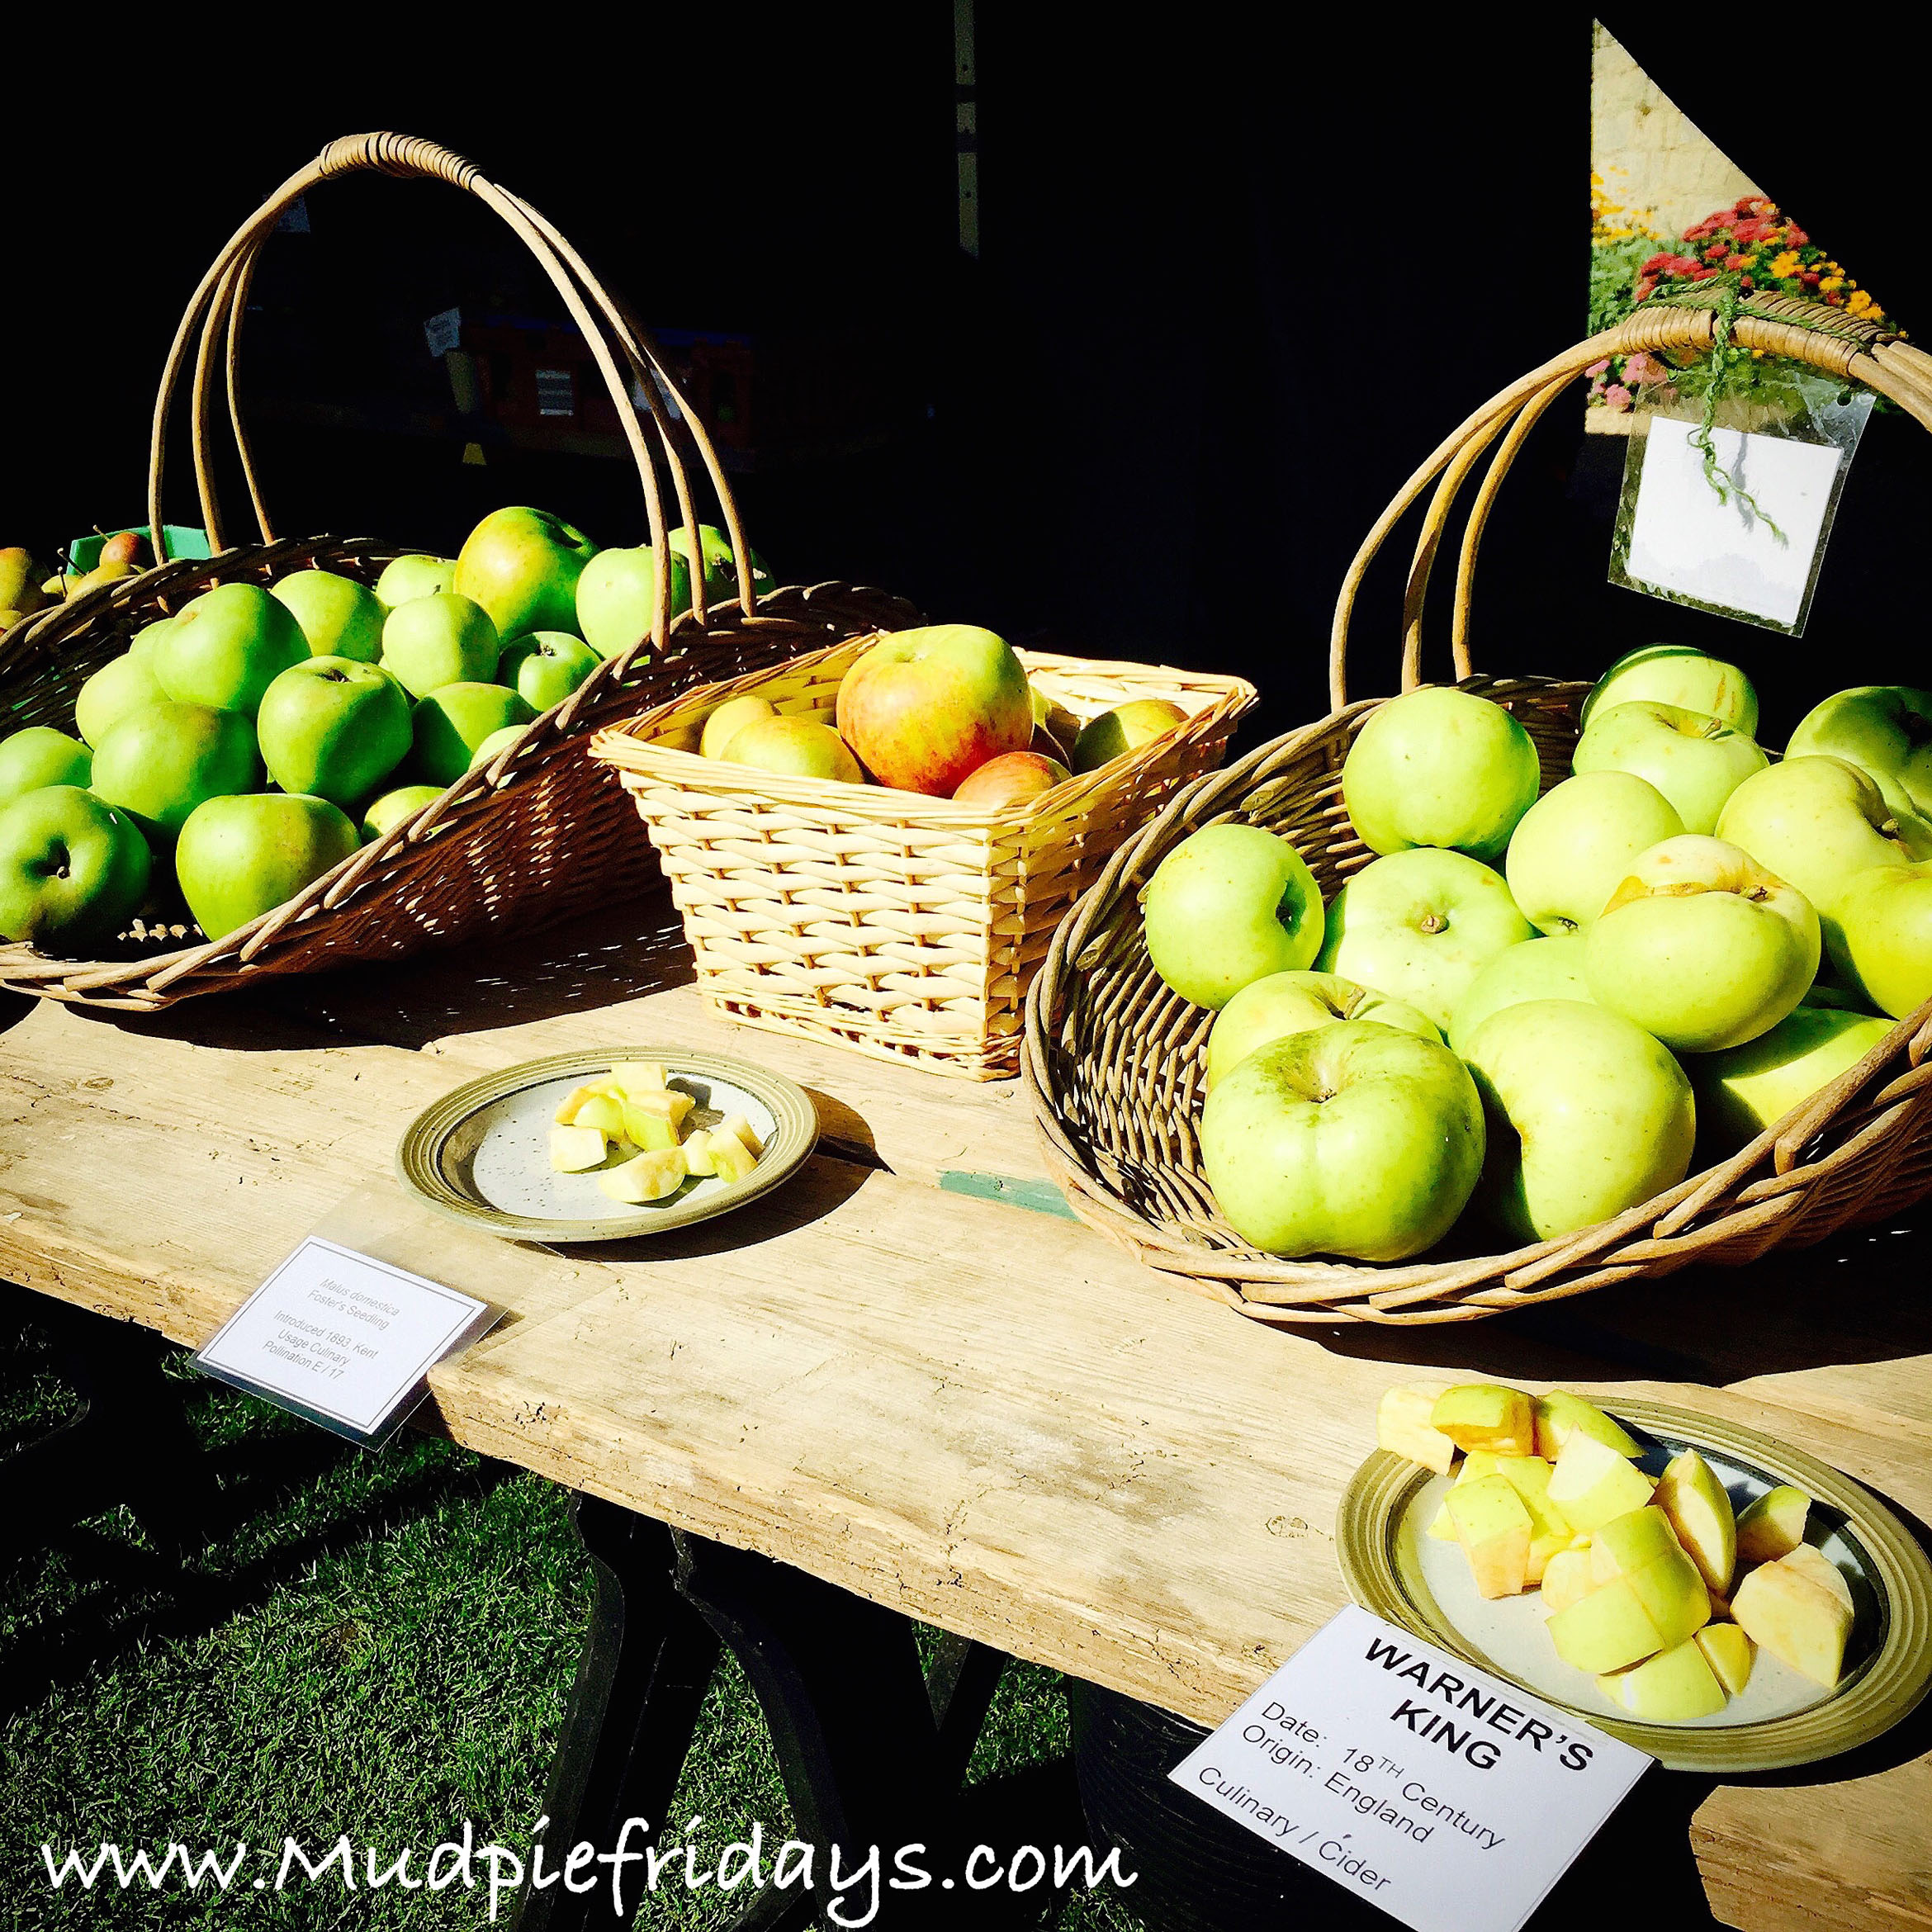 Igtham Mote - apple festival